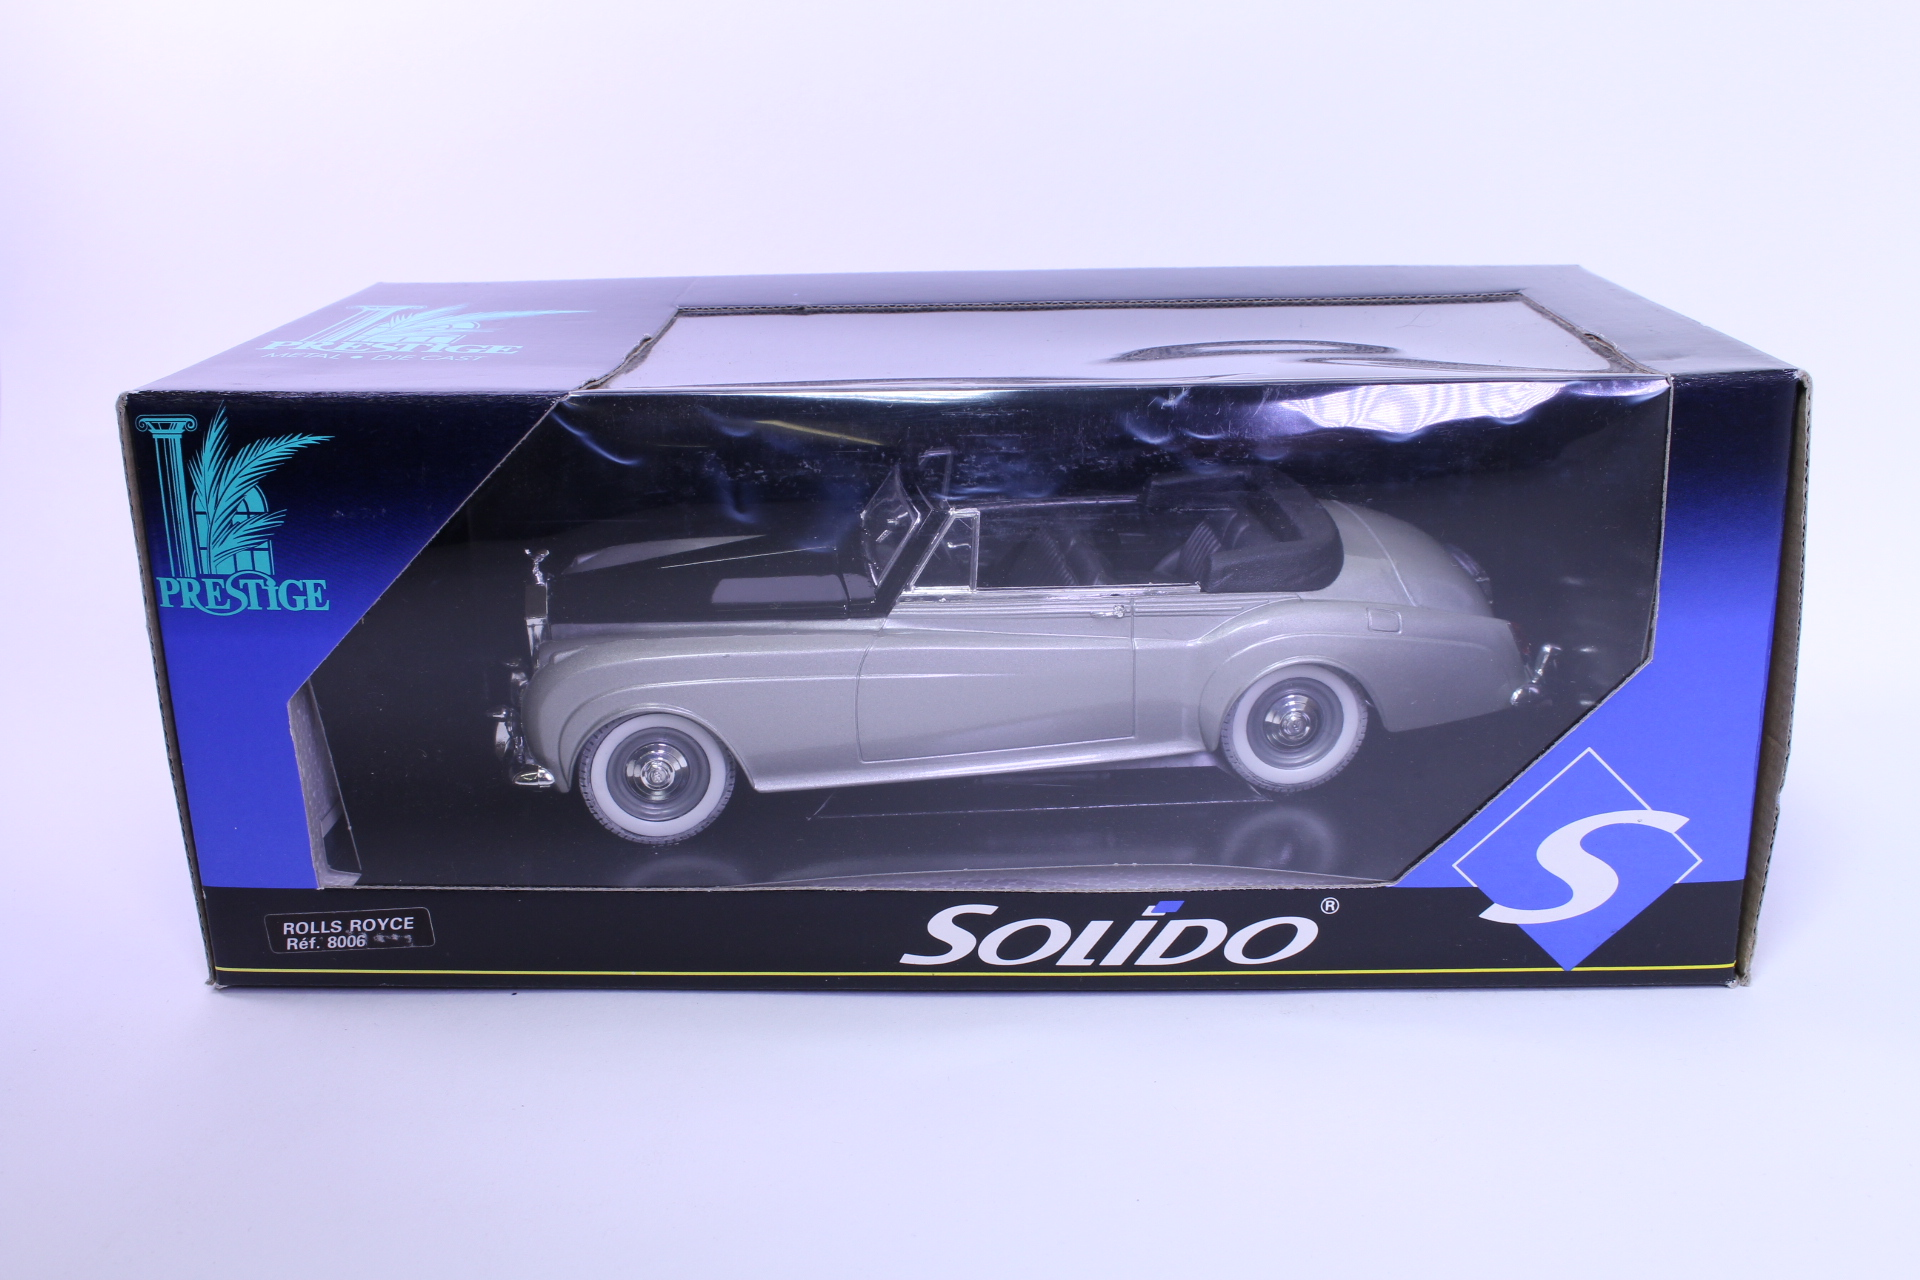 Picture Gallery for Solido 8006 Rolls Royce